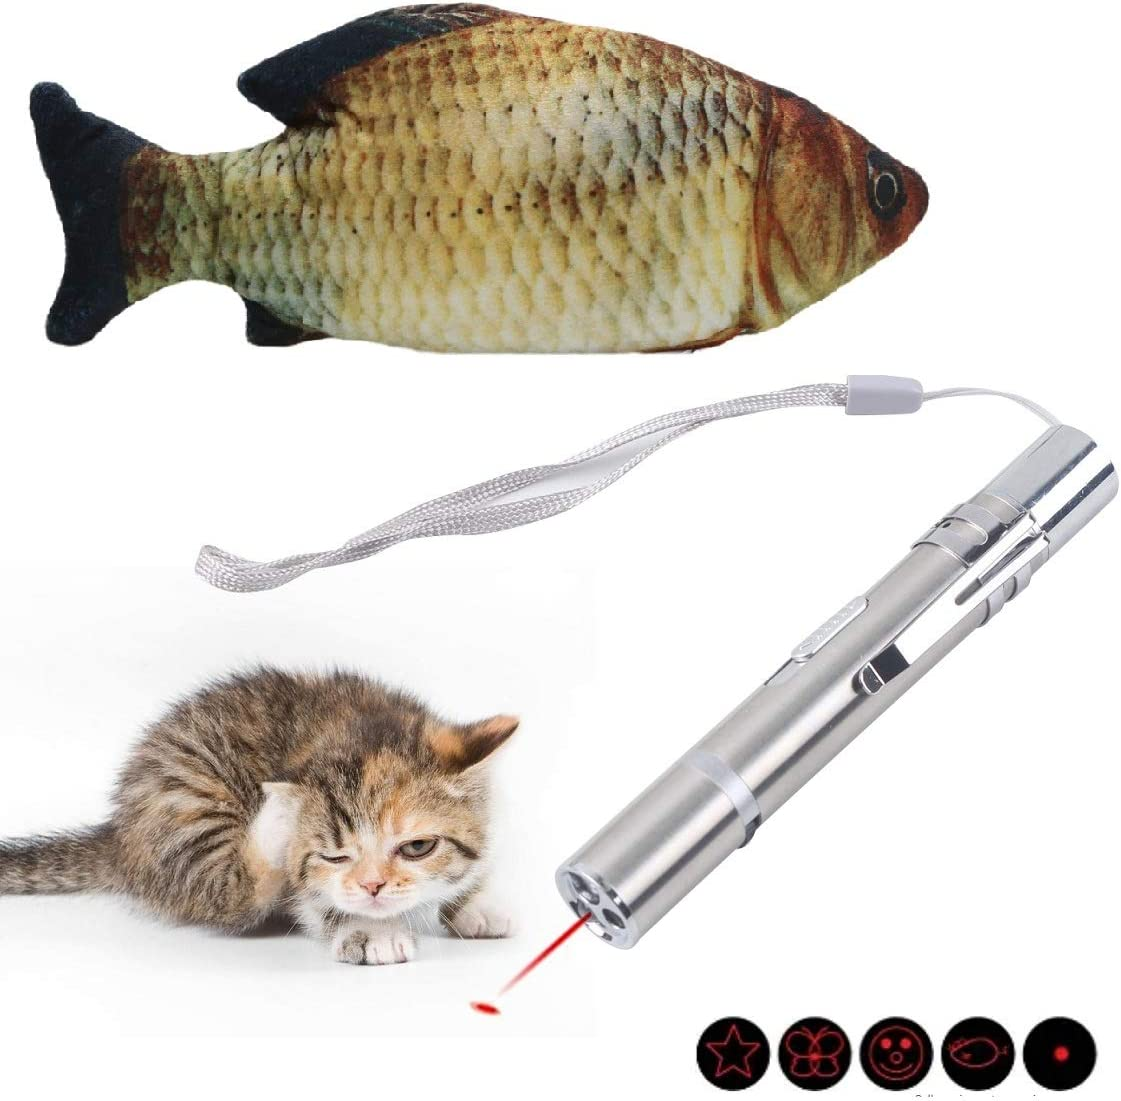 SEGE Max 85% OFF Electric Moving Cat Fish Wagging Time sale Toy Realistic Interactive